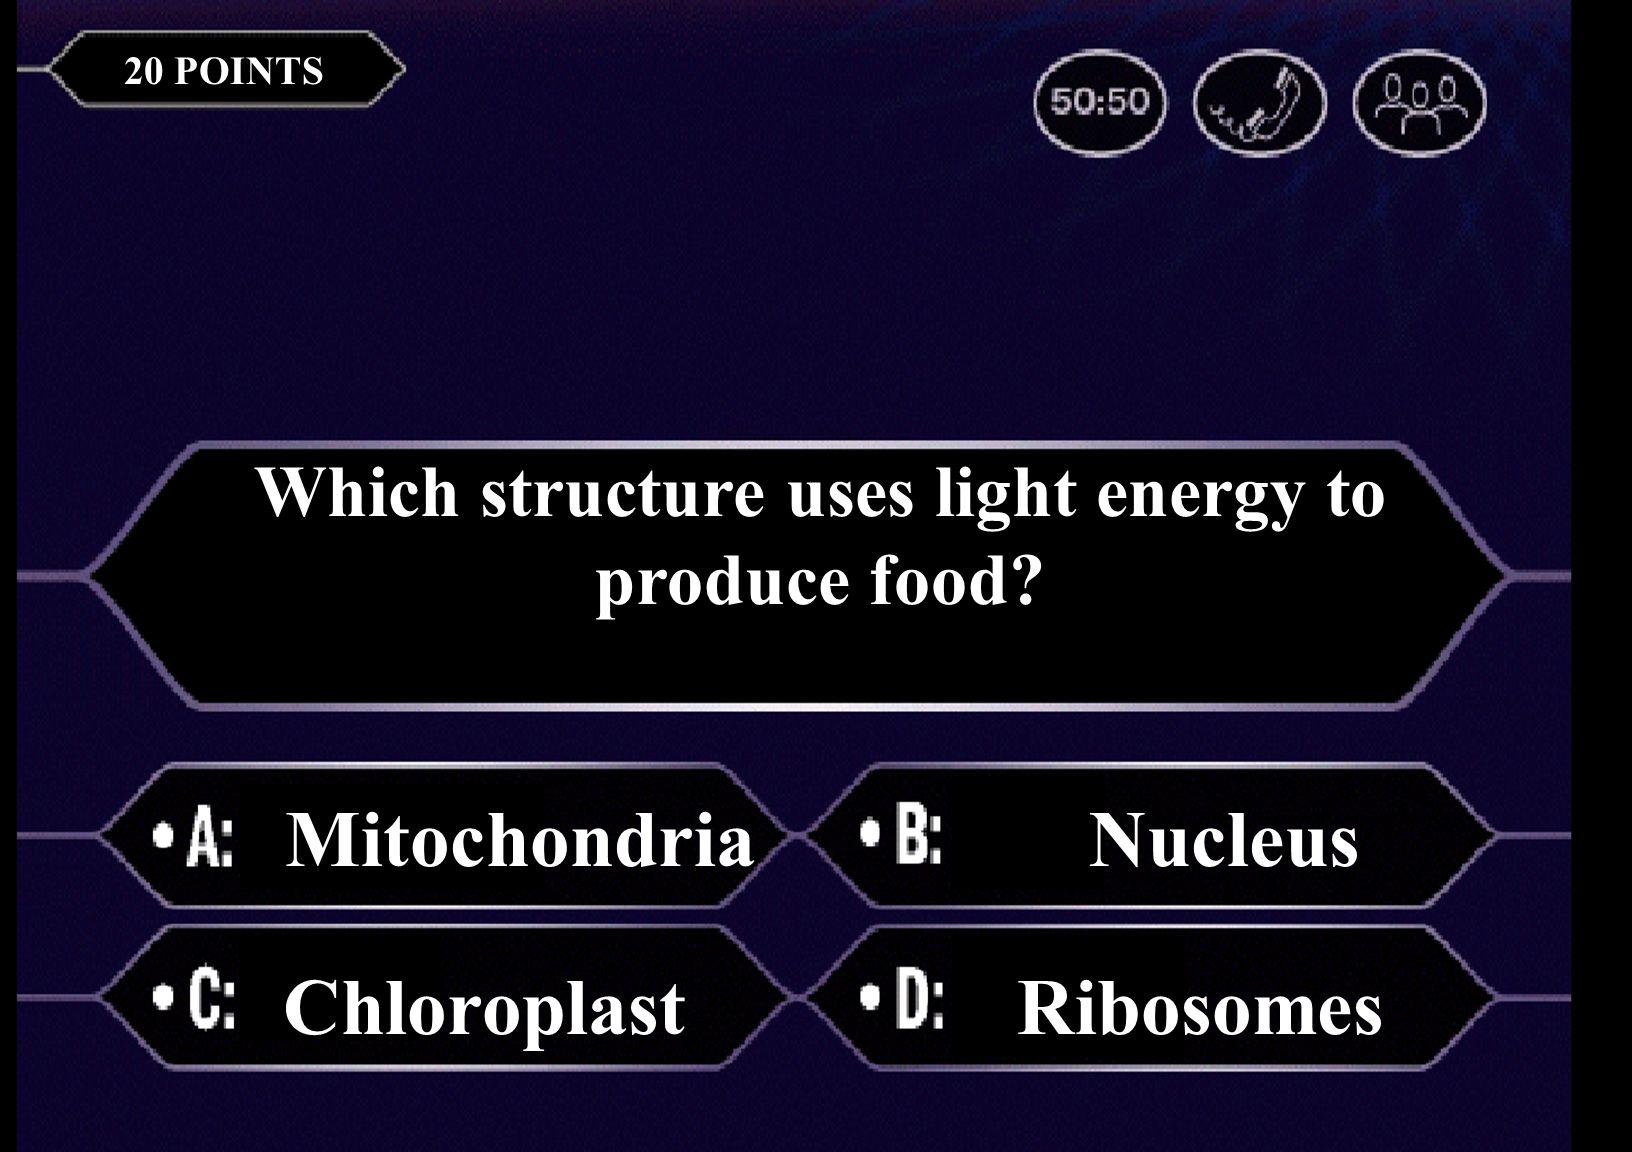 The basic unit of life is a(n) cell airtissue 20 POINTS Which structure uses light energy to produce food.